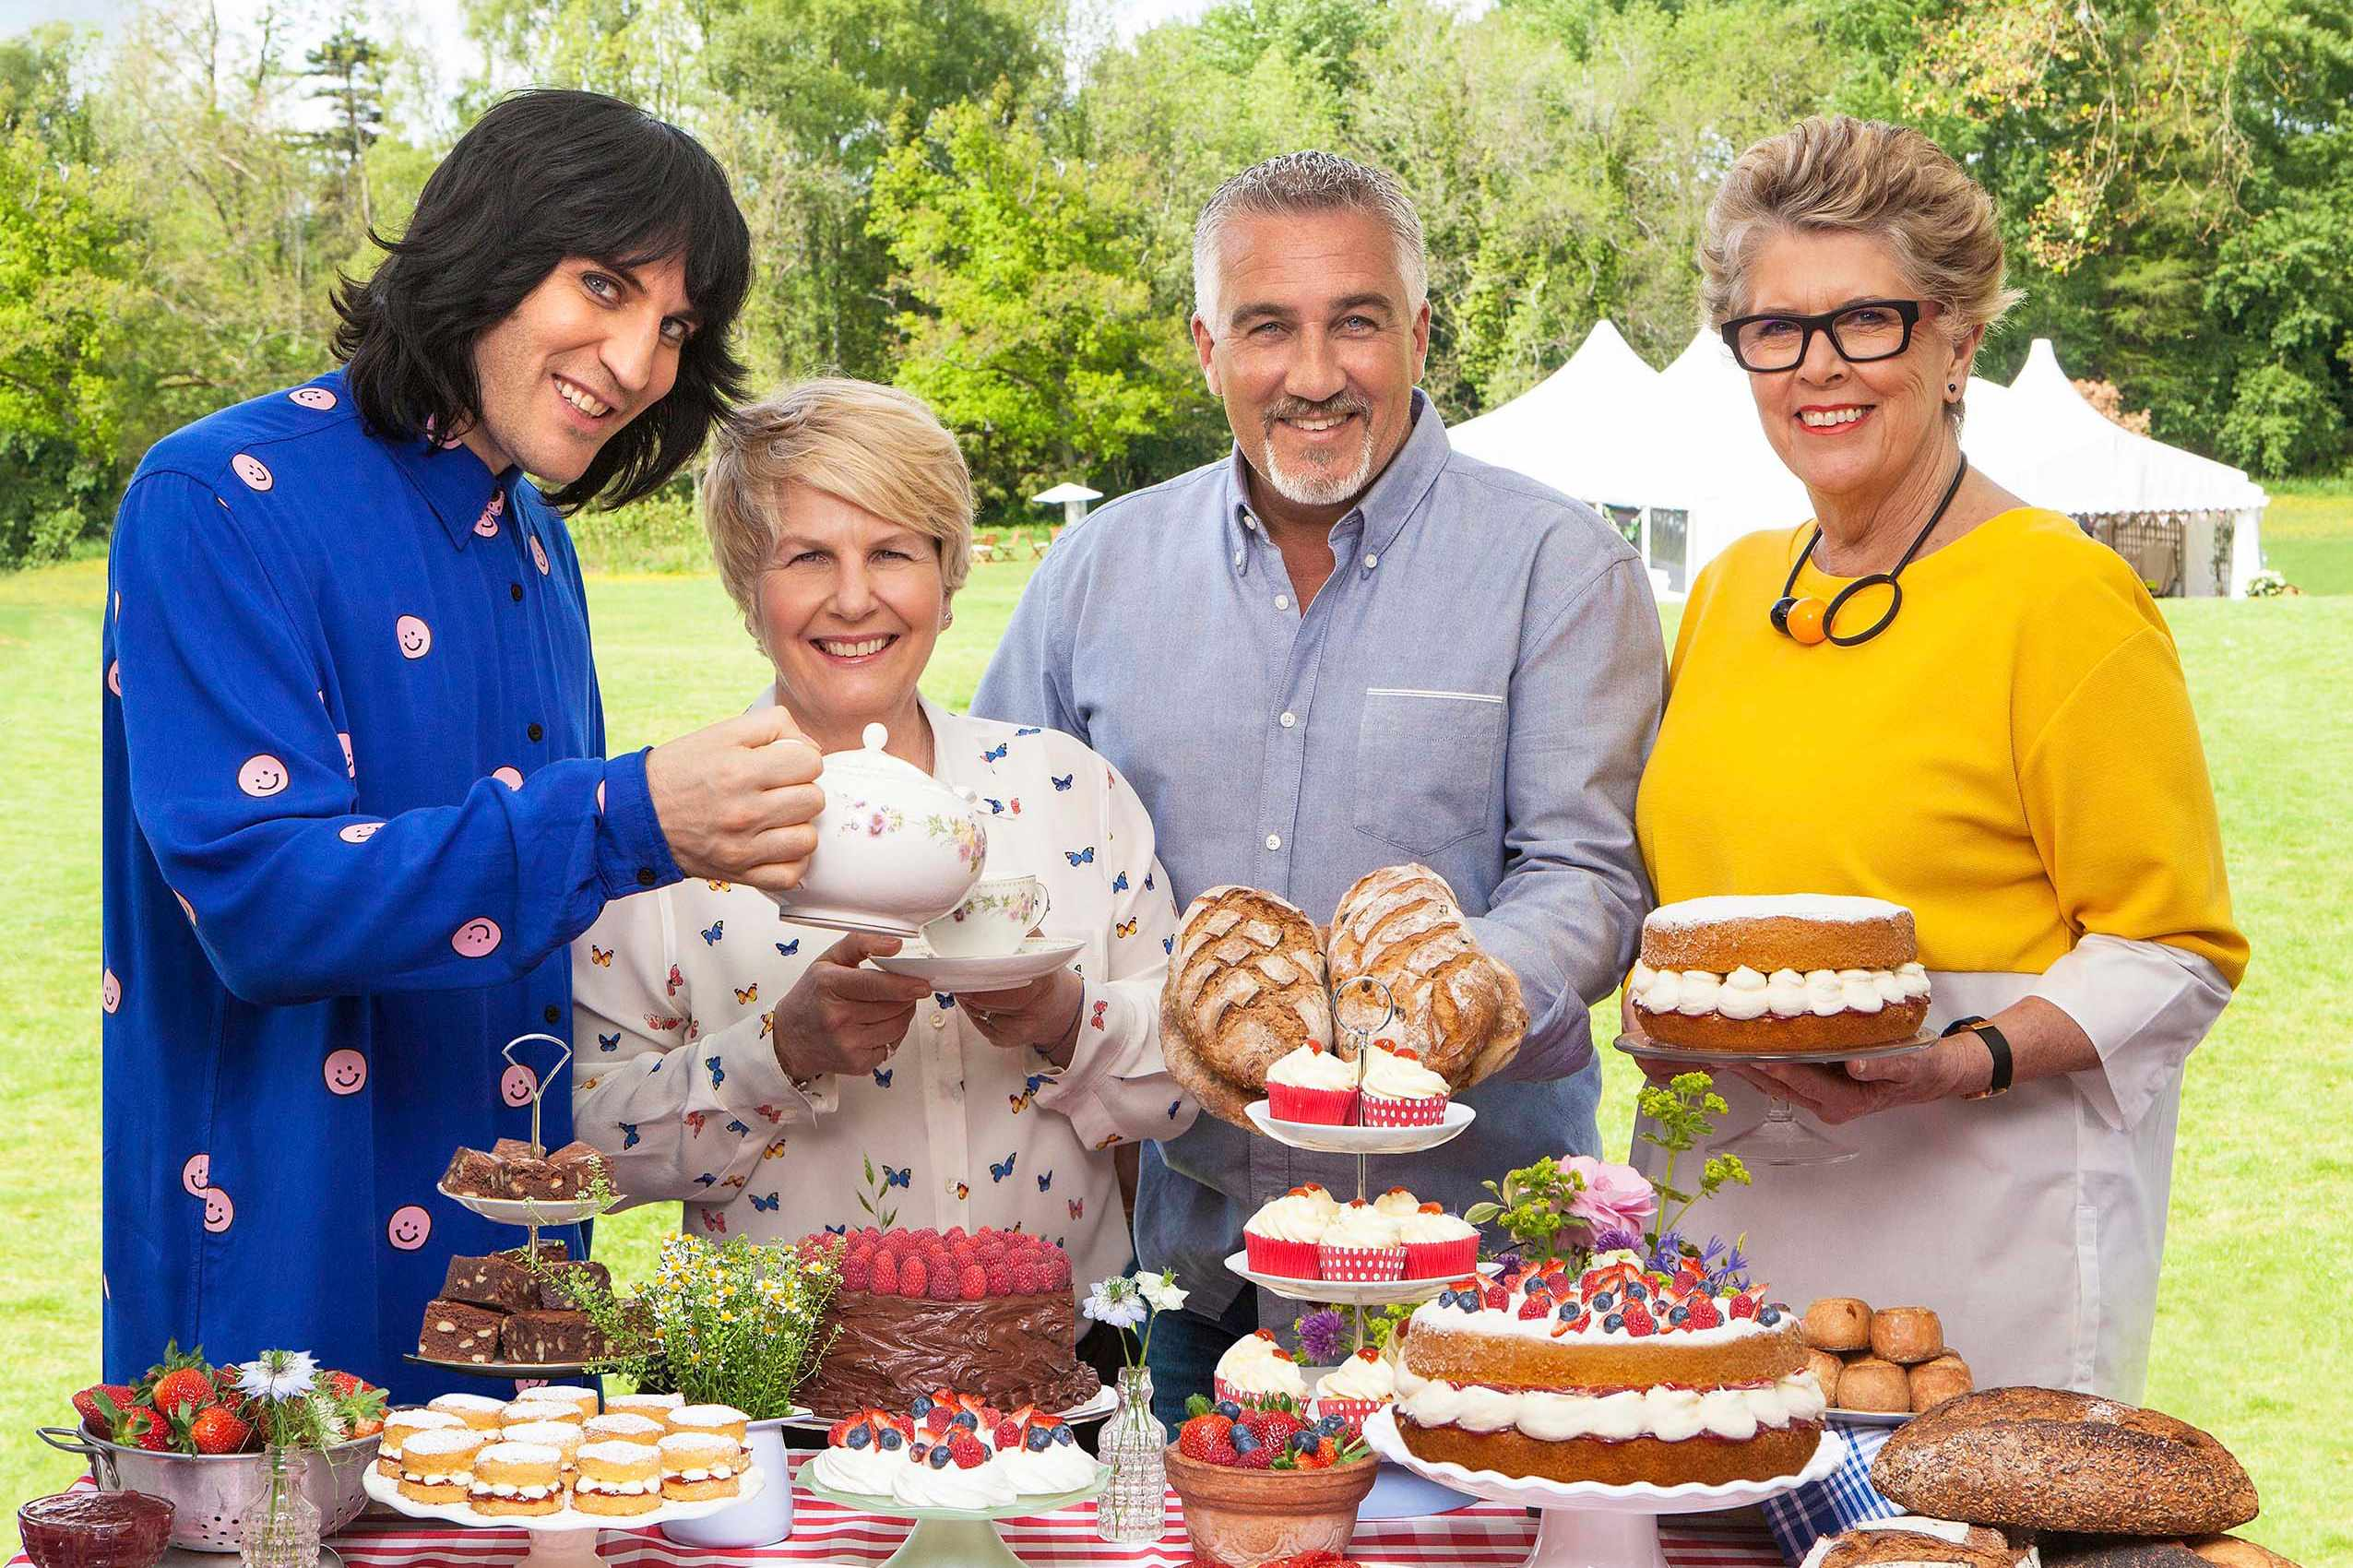 Bake Off tea and cake